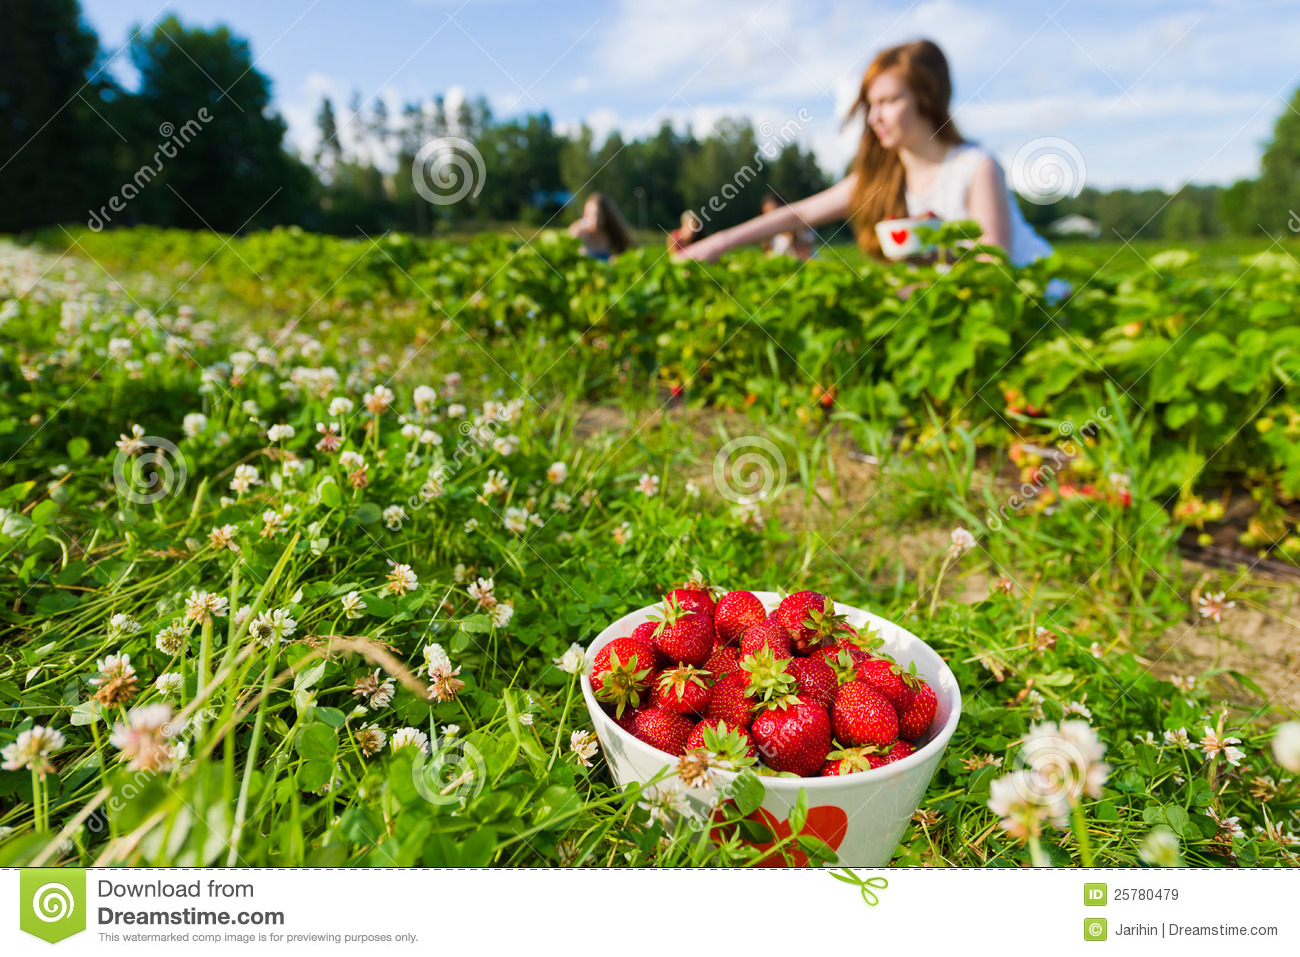 Strawberry Field Clipart strawberry field royalty free stock images ...